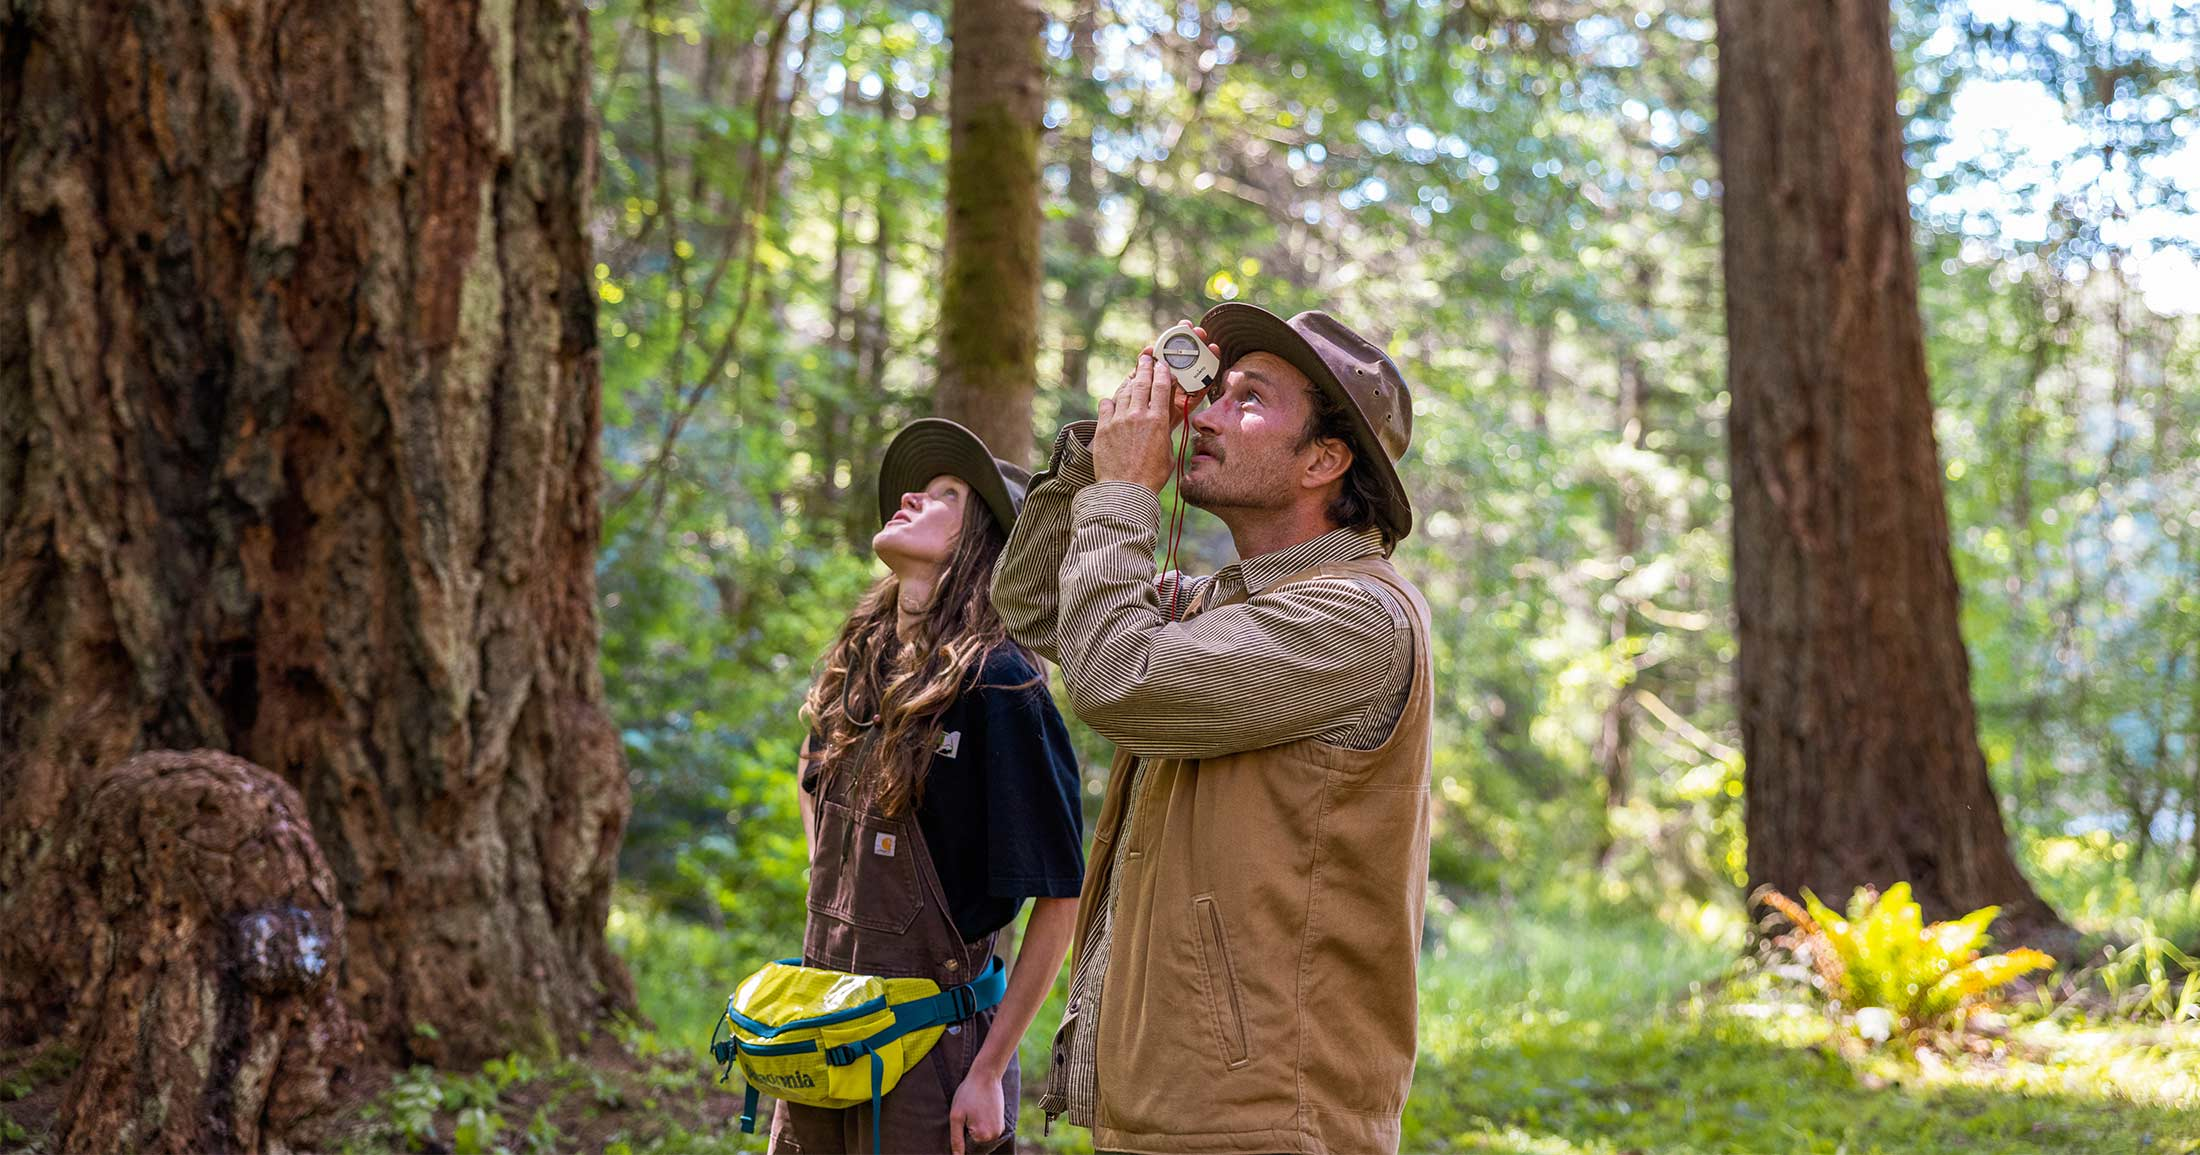 Two people looking up at a tree with one person measuring the height of a tree using an inclinometer.